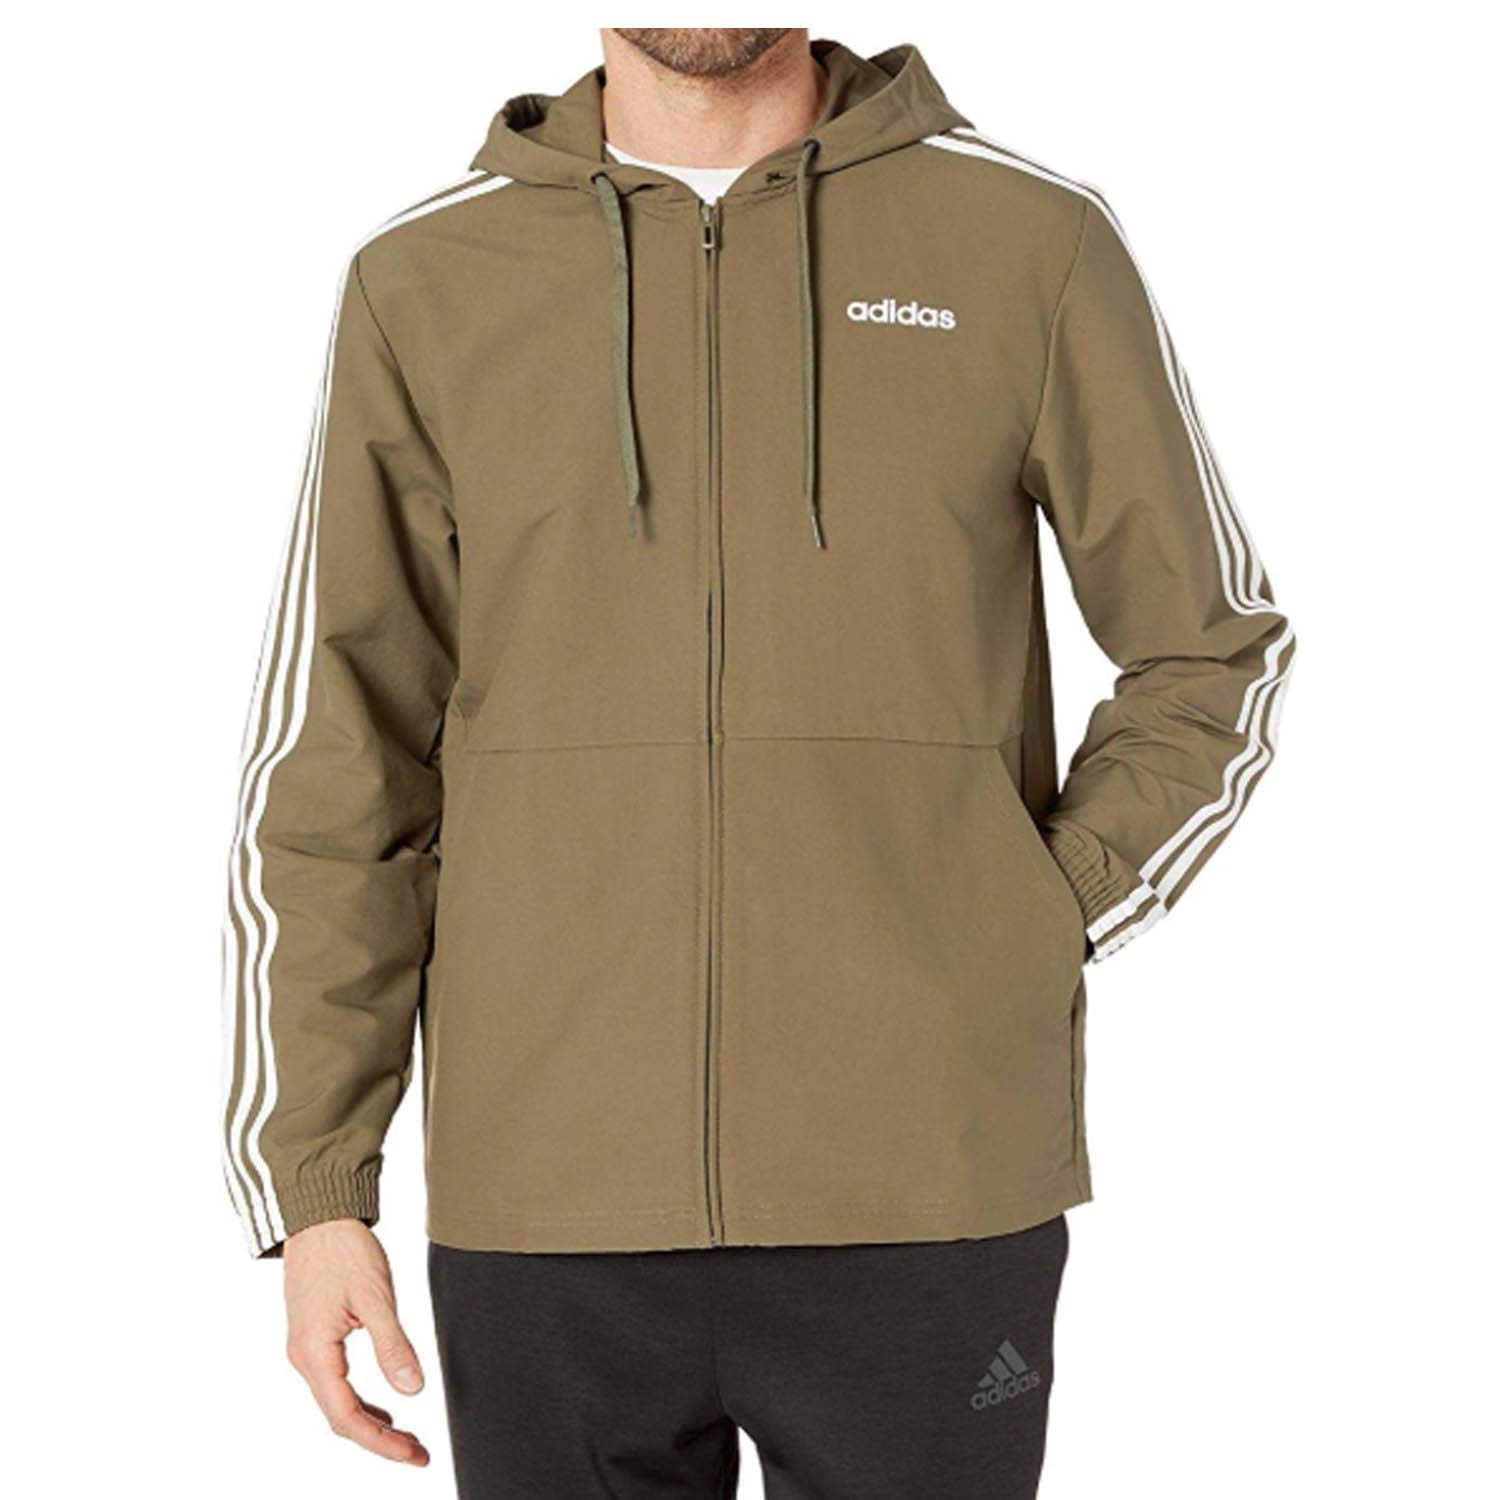 adidas Men's Essentials 3-Stripes Woven Windbreaker, Raw Khaki/White, XX-Large by adidas